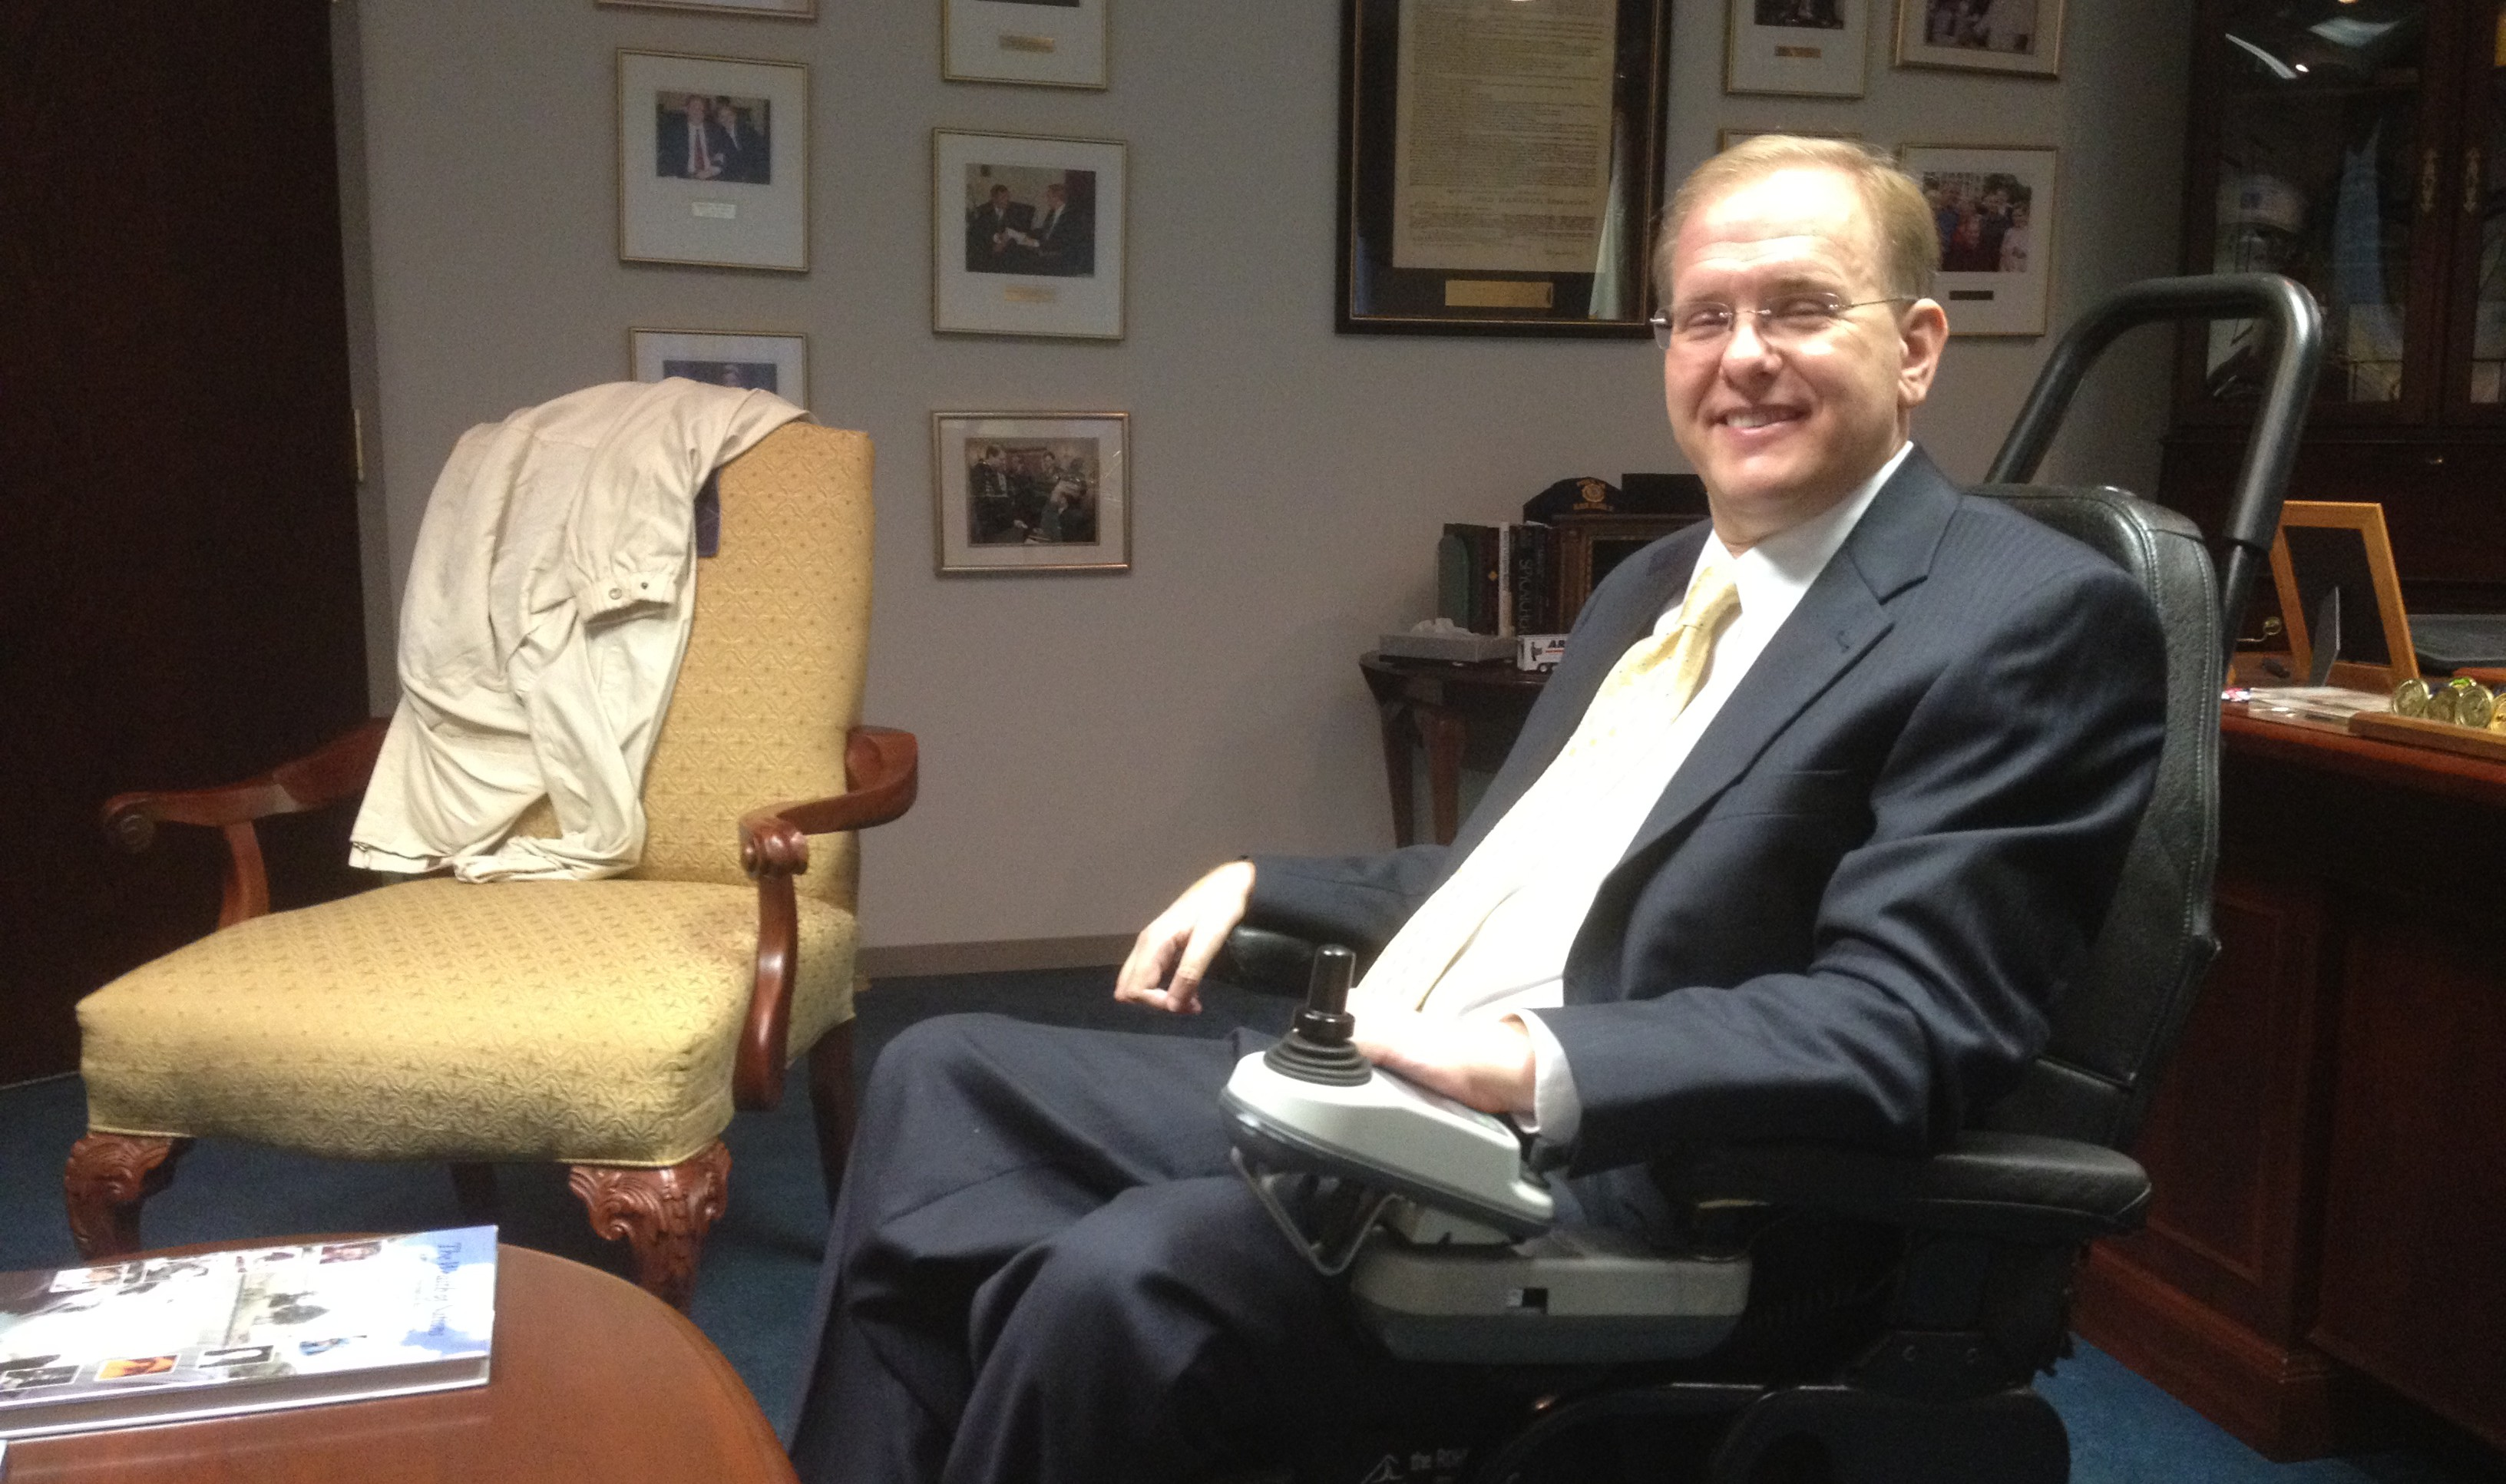 Jim Langevin seated in a power wheelchair in his office